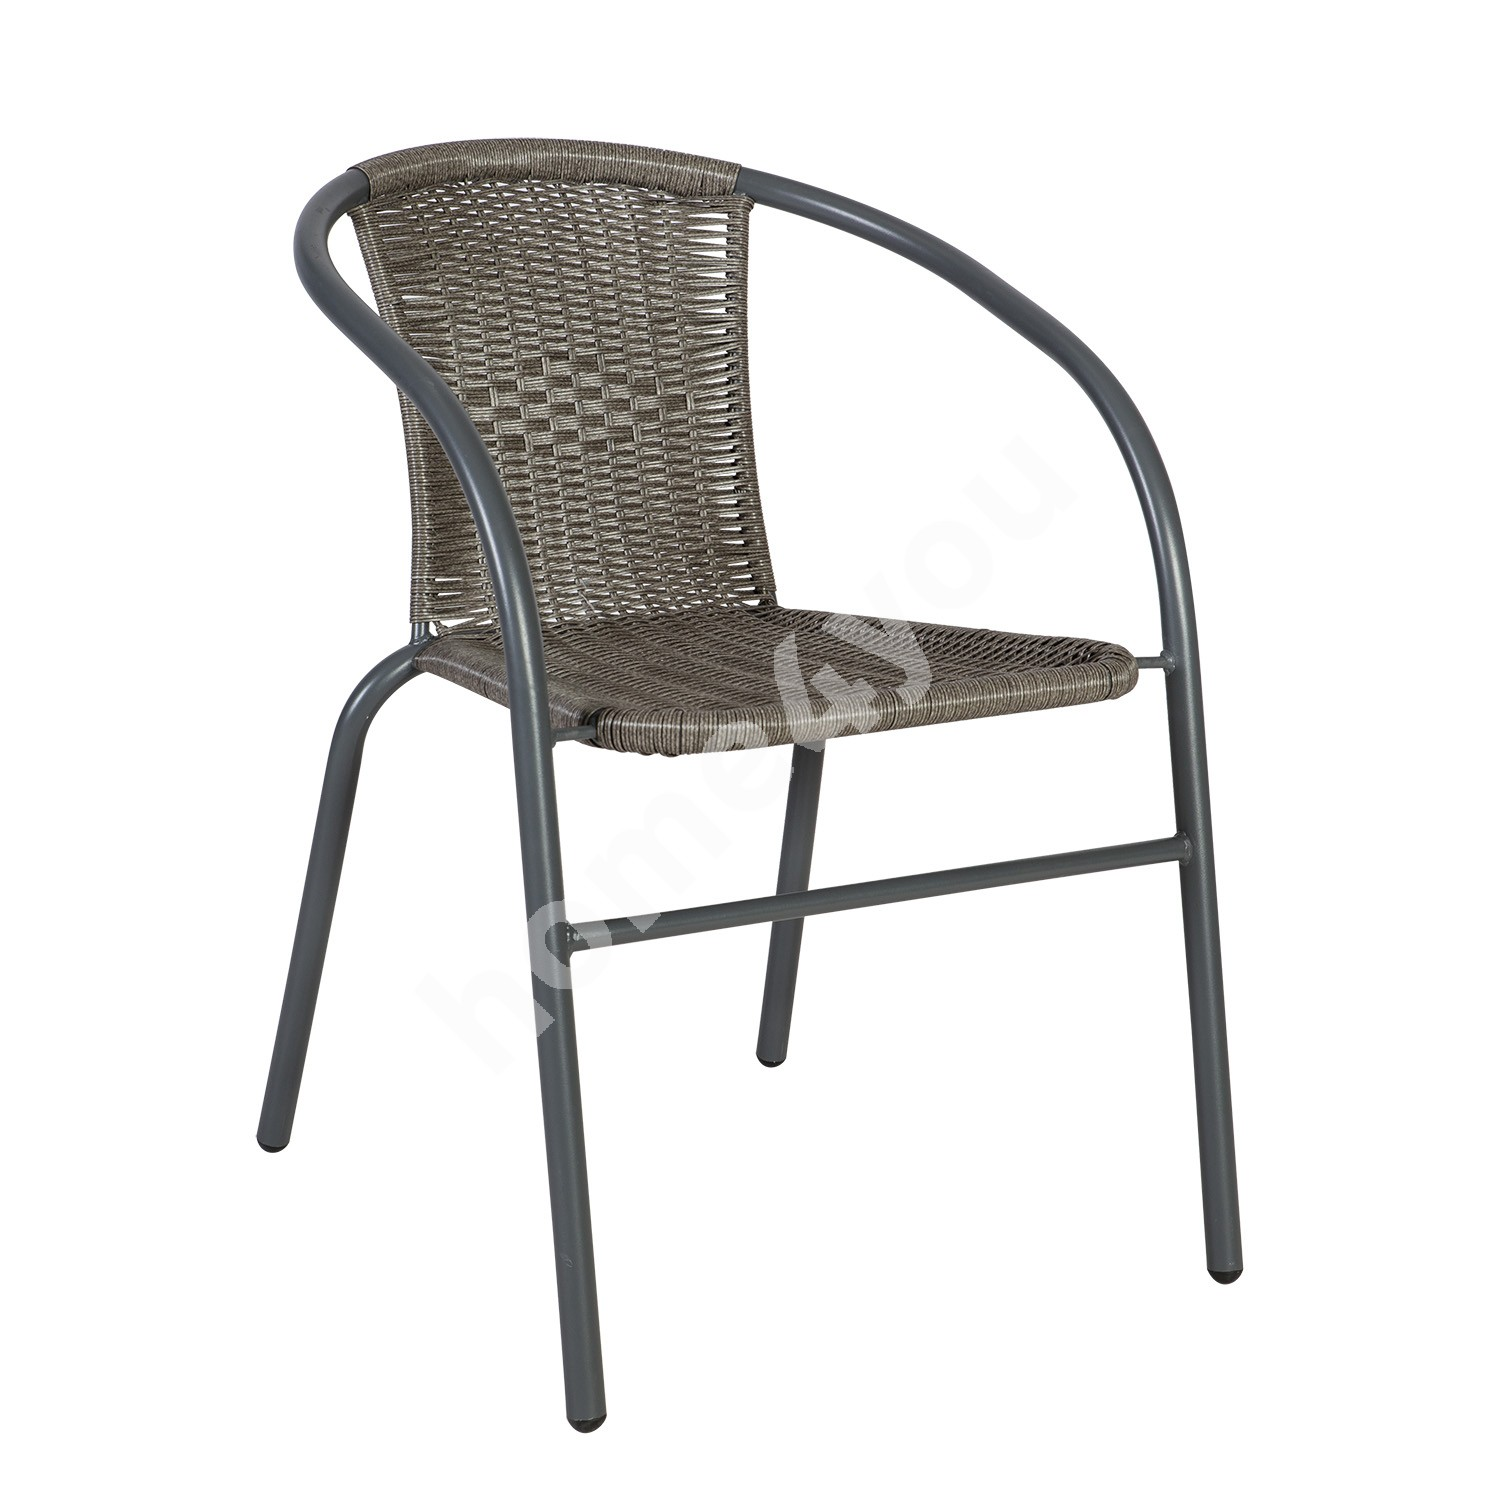 Chair BISTRO 52x58xH72cm, seat and back rest: plastic wicker, steel frame: color: grey